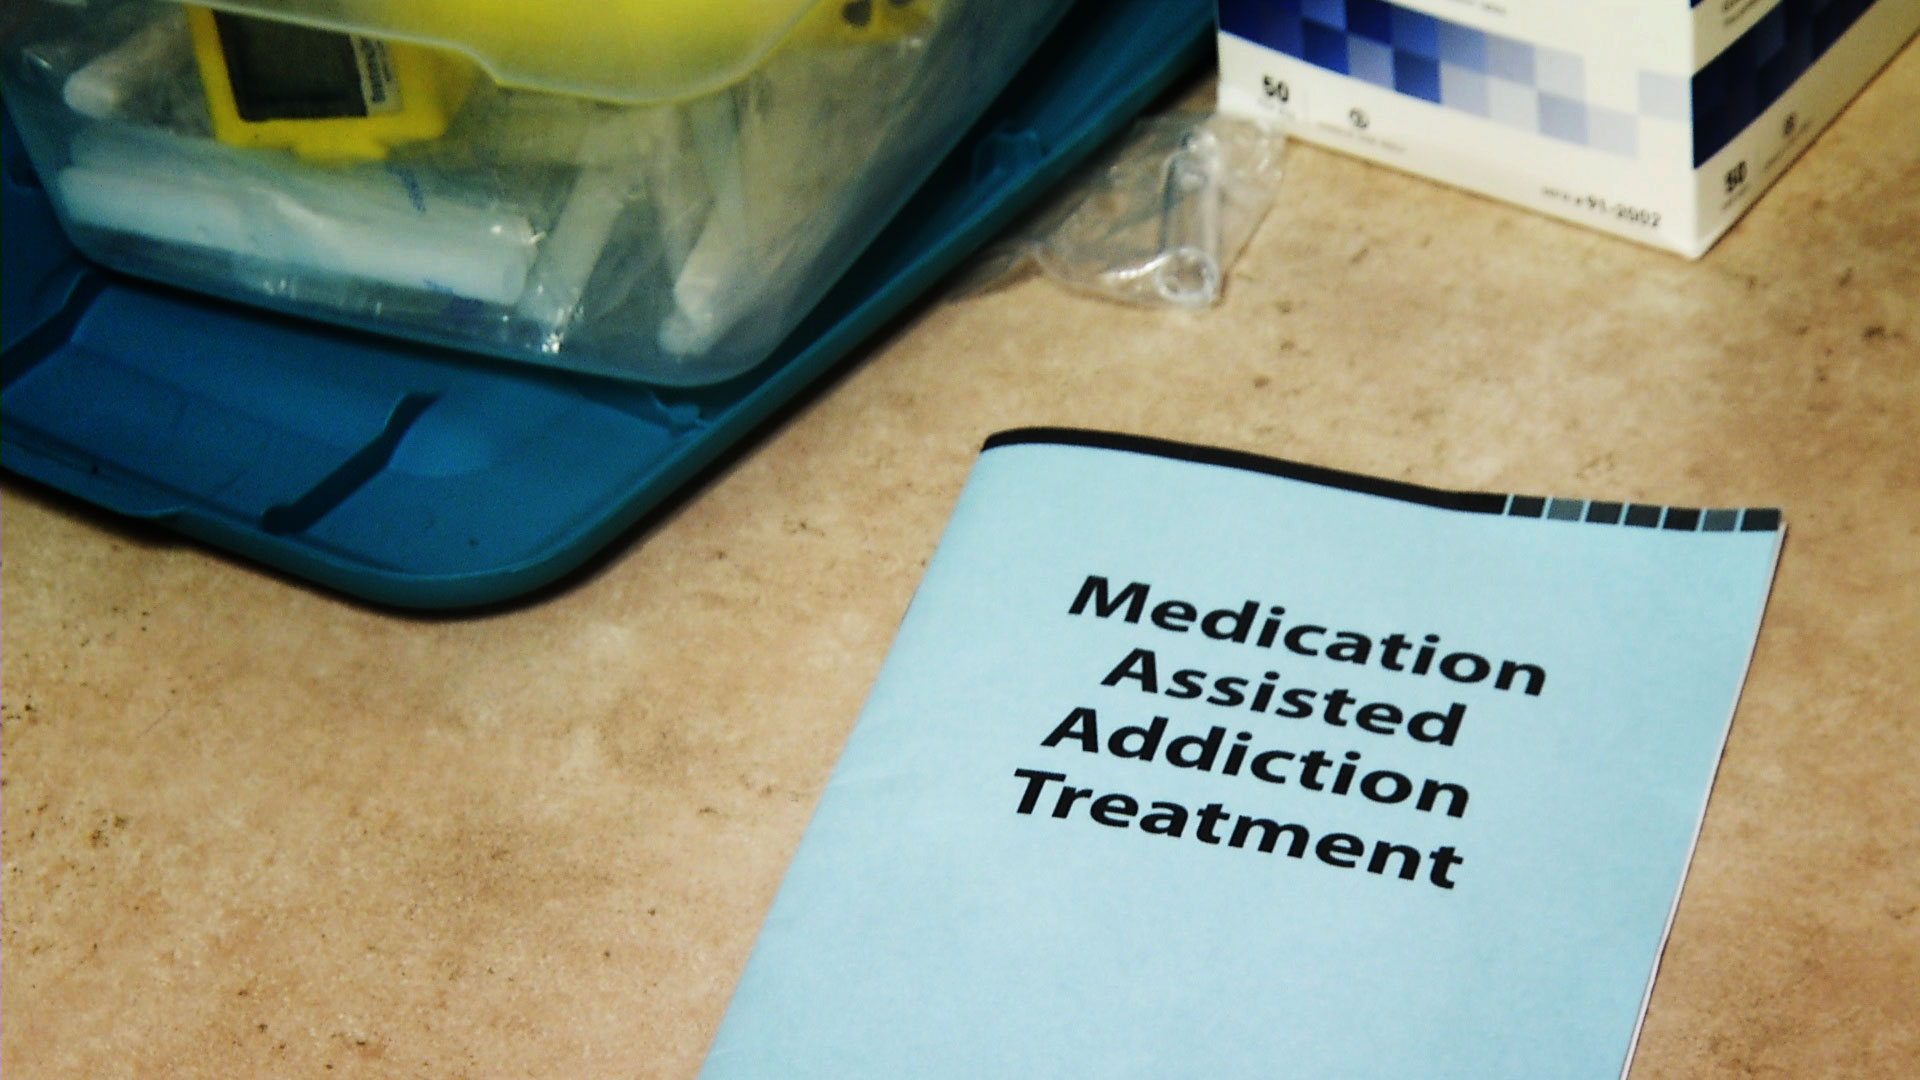 A pamphlet for medication assisted addiction treatment at the CODAC Health, Recovery and Wellness center in Tucson.